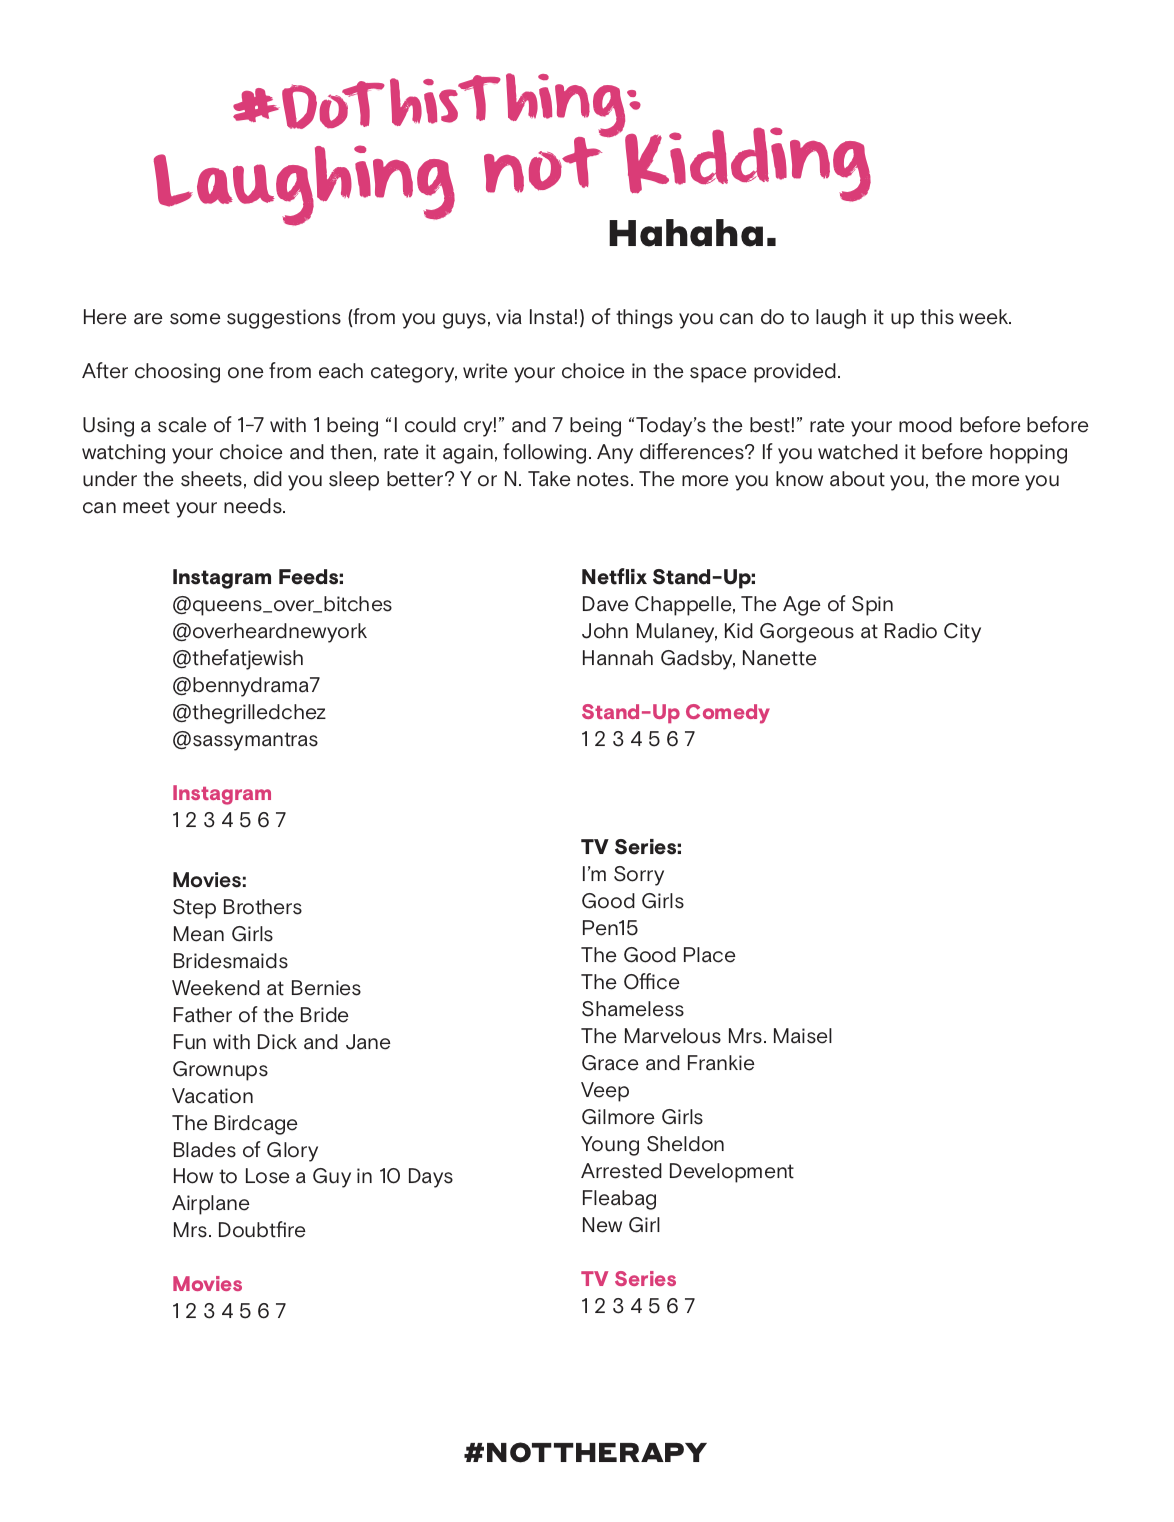 DoThisThing: Laughing not Kidding - Not Therapy